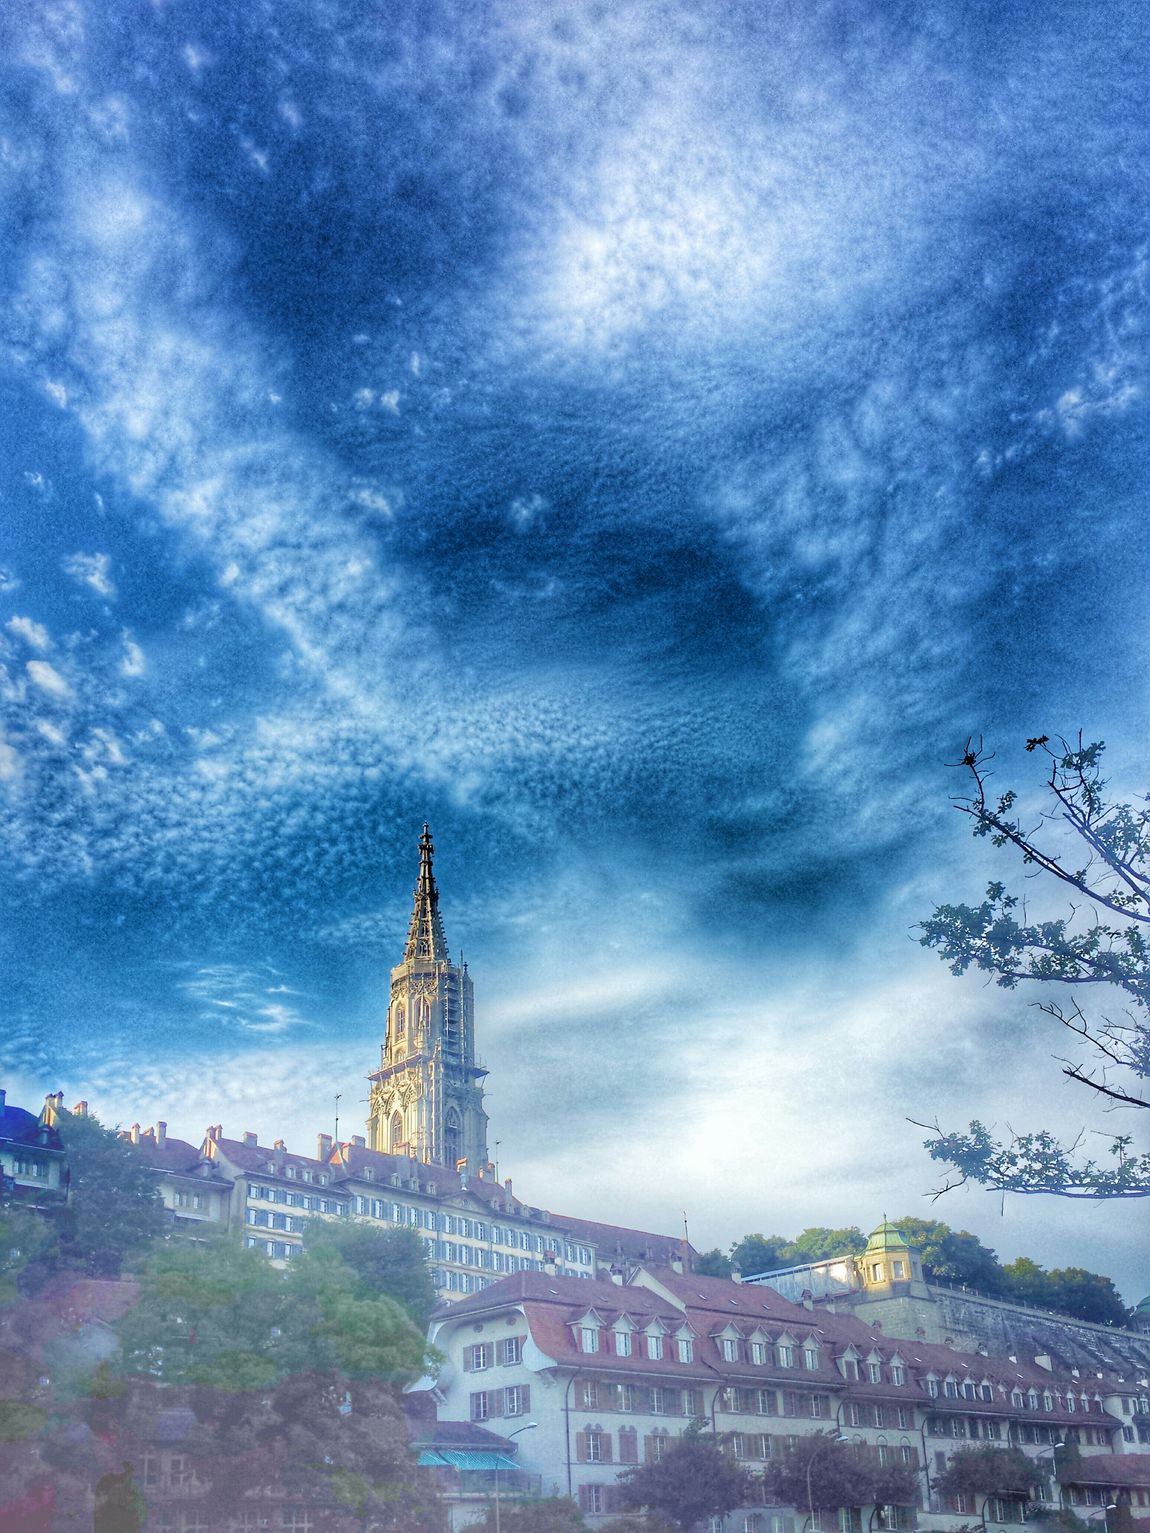 Berner Münster Cityscape Cityscapes Sky And Clouds Bern Switzerland Urban Spring Fever